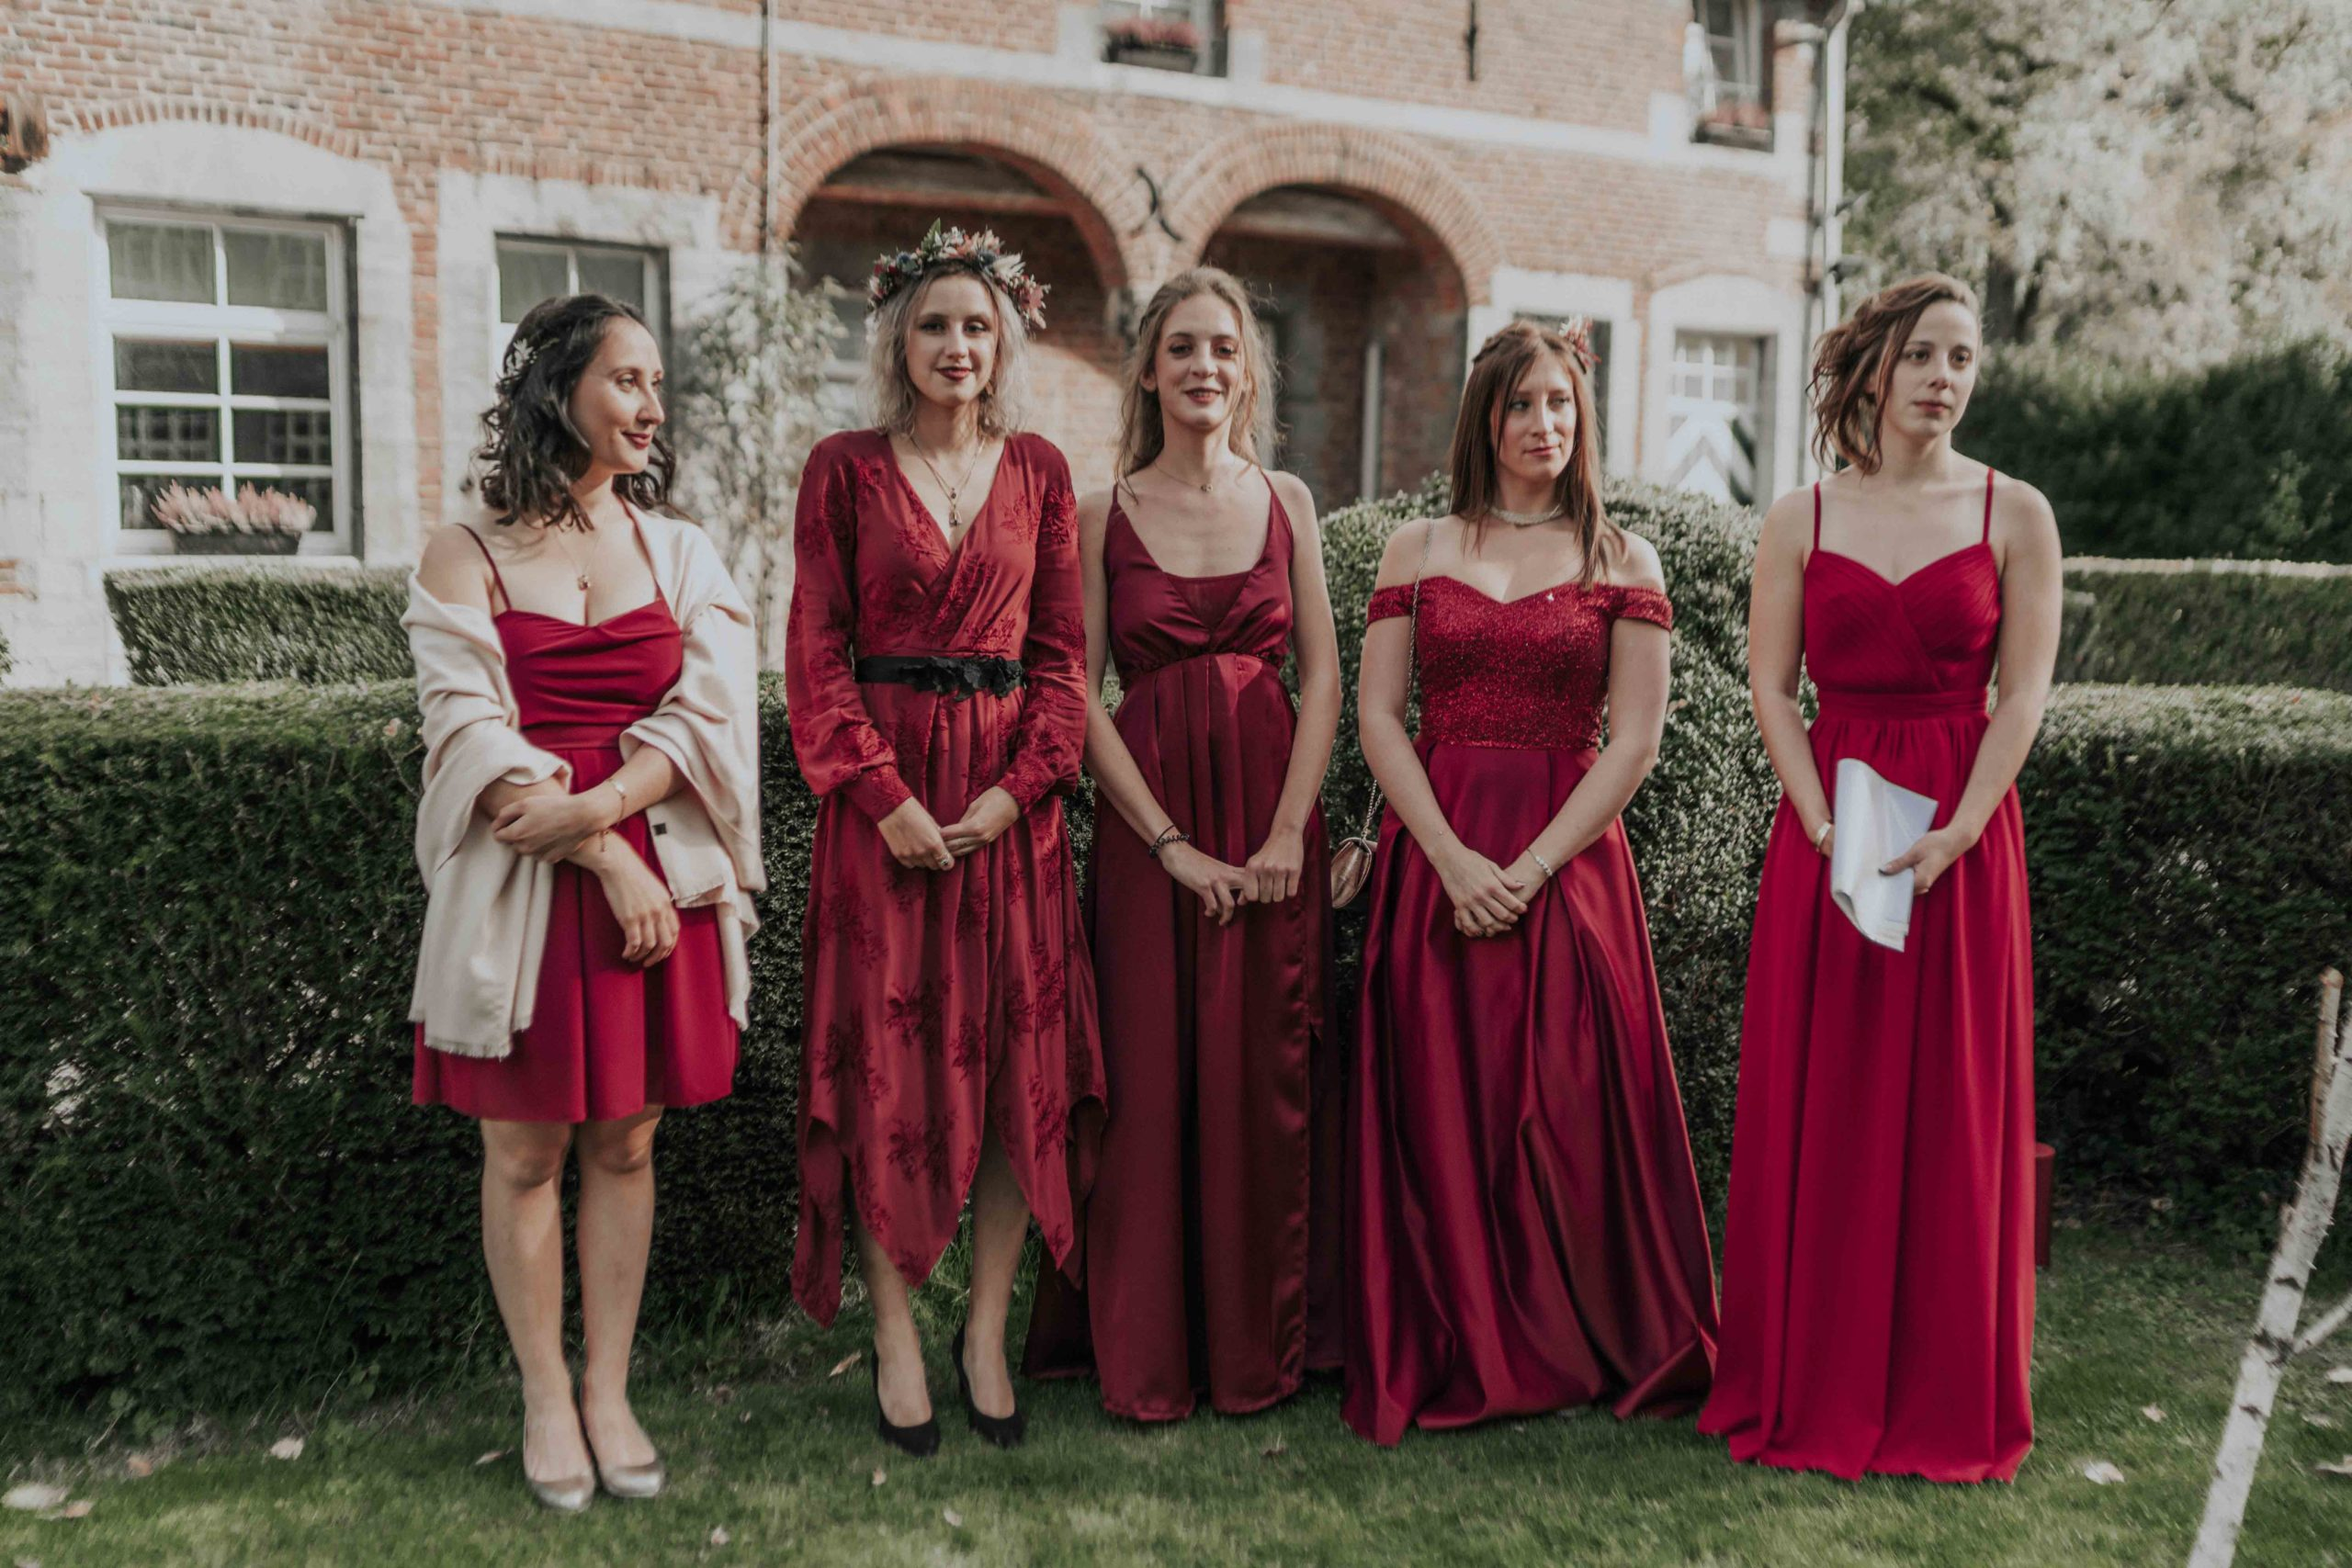 FOREVER_FANNY_MYARD_PHOTOGRAPHY_LN_MARIAGE-285